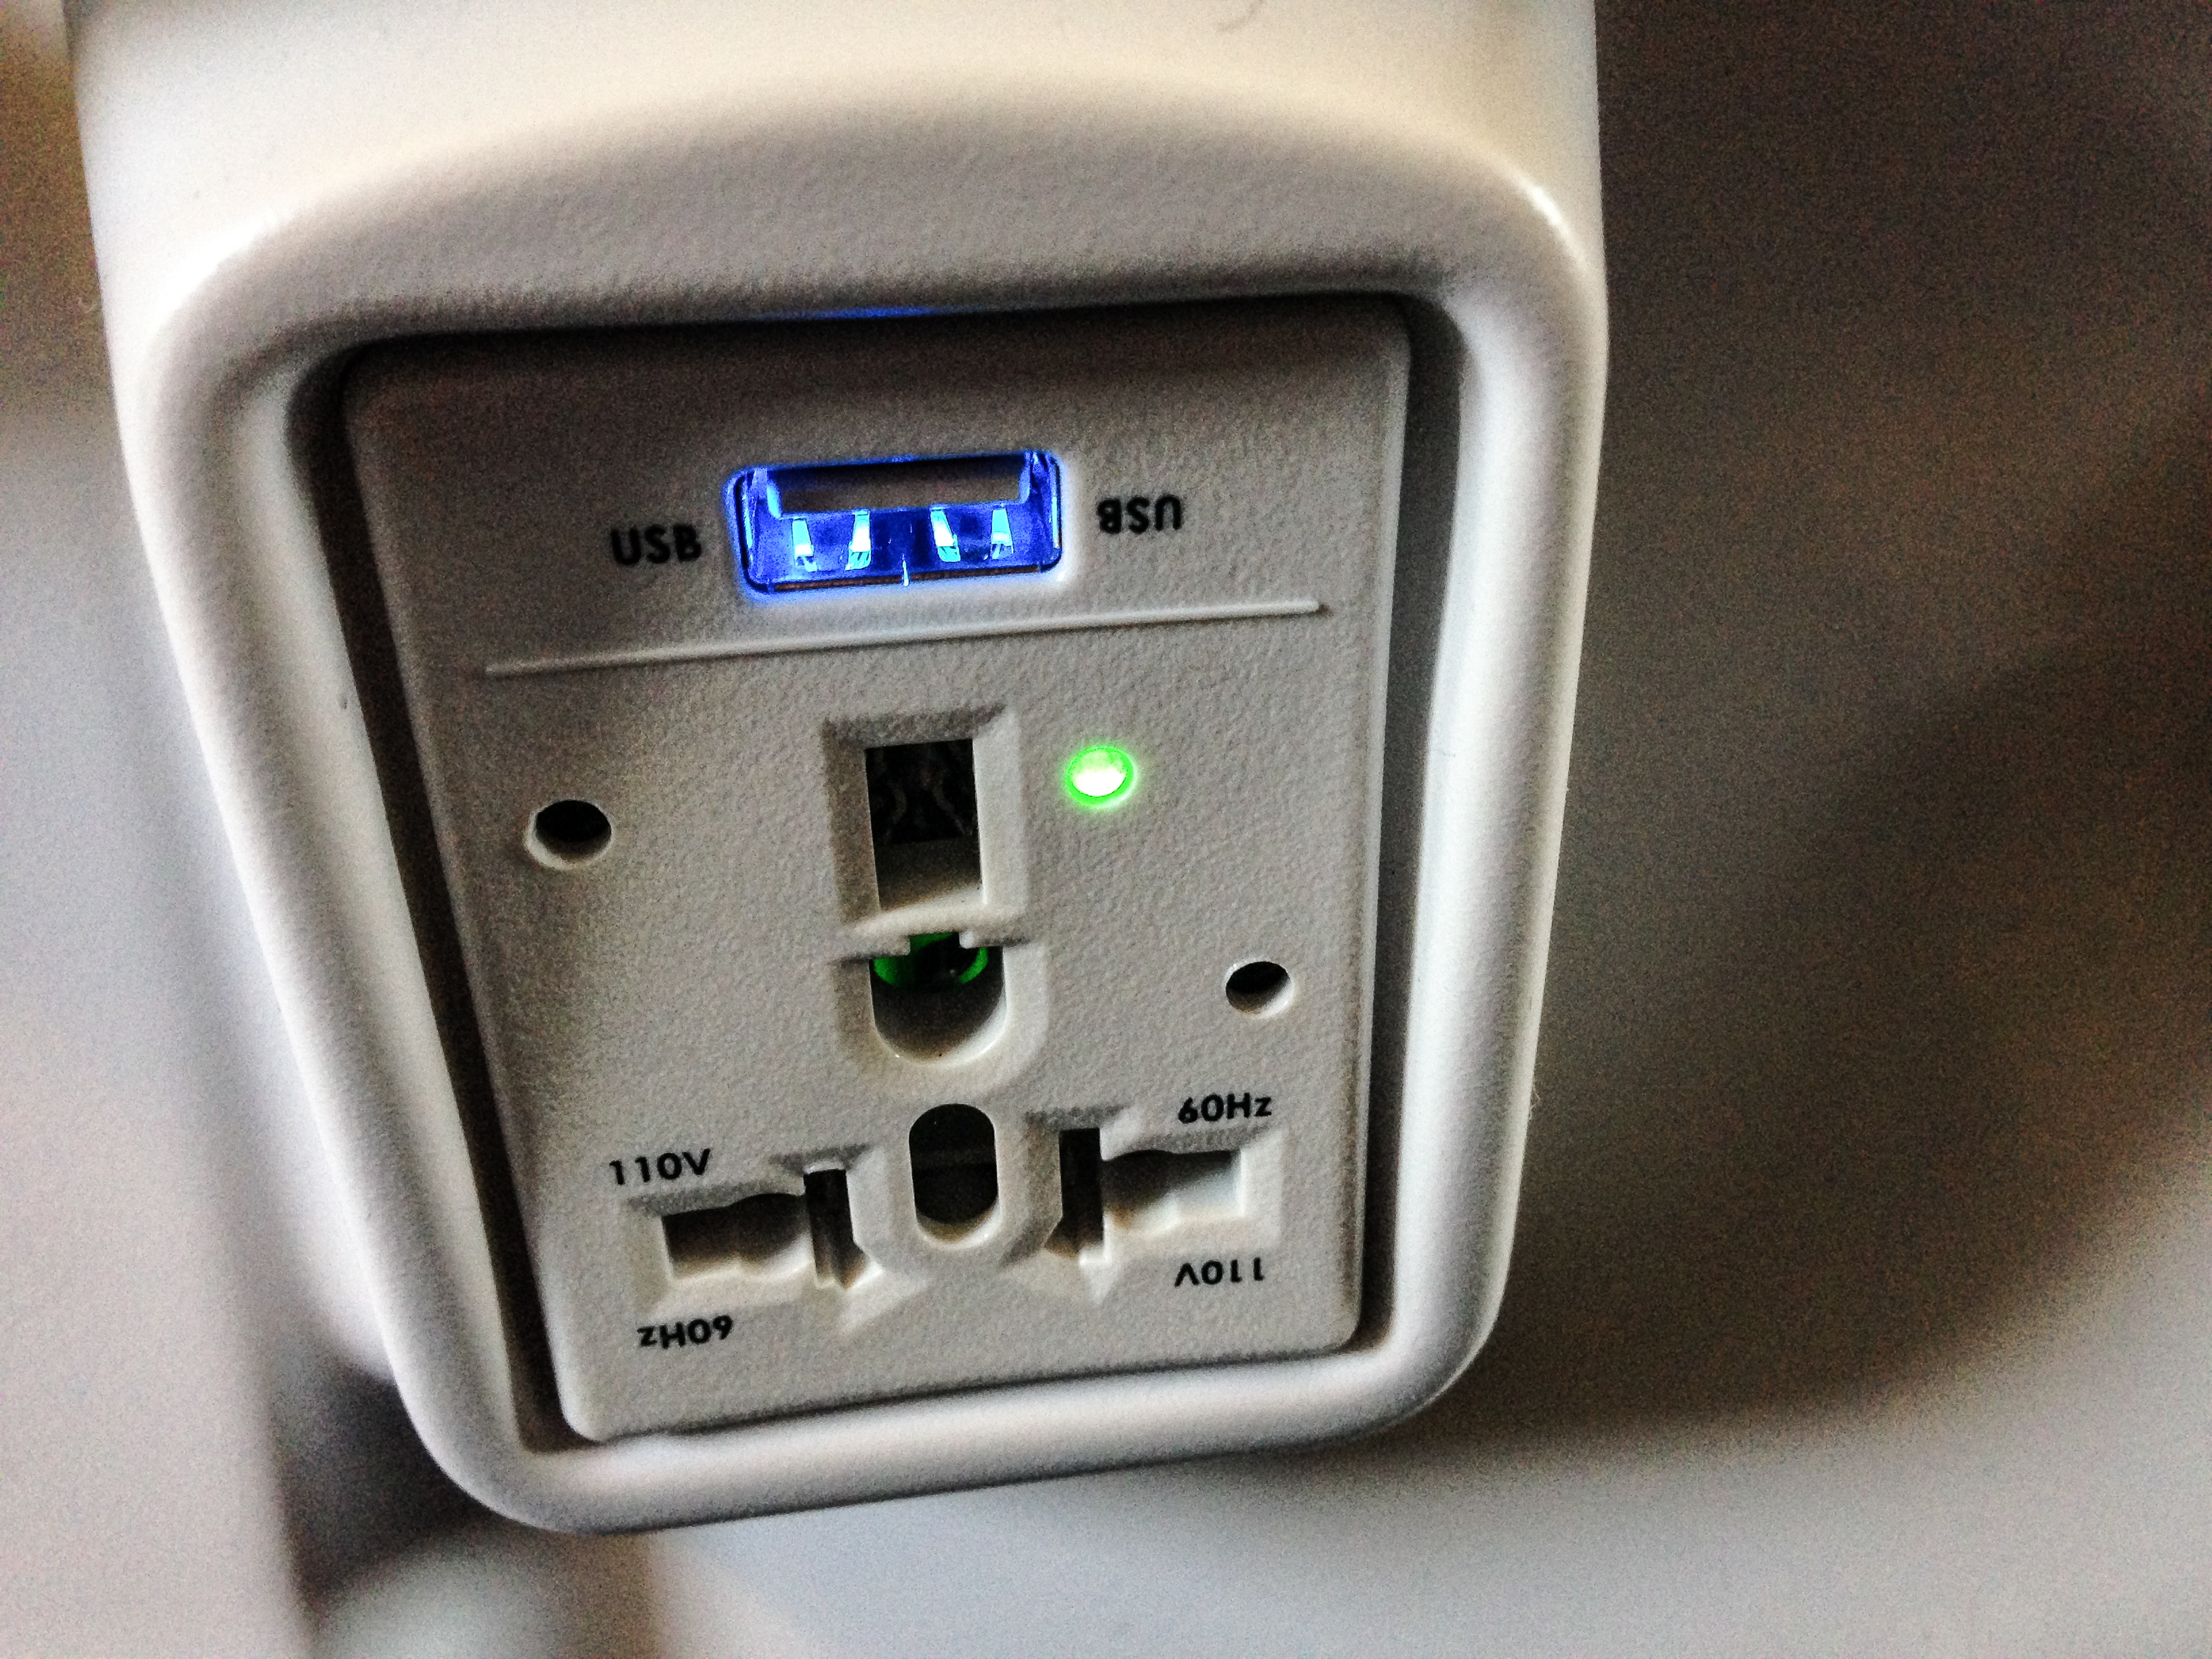 USB charger in an airplane